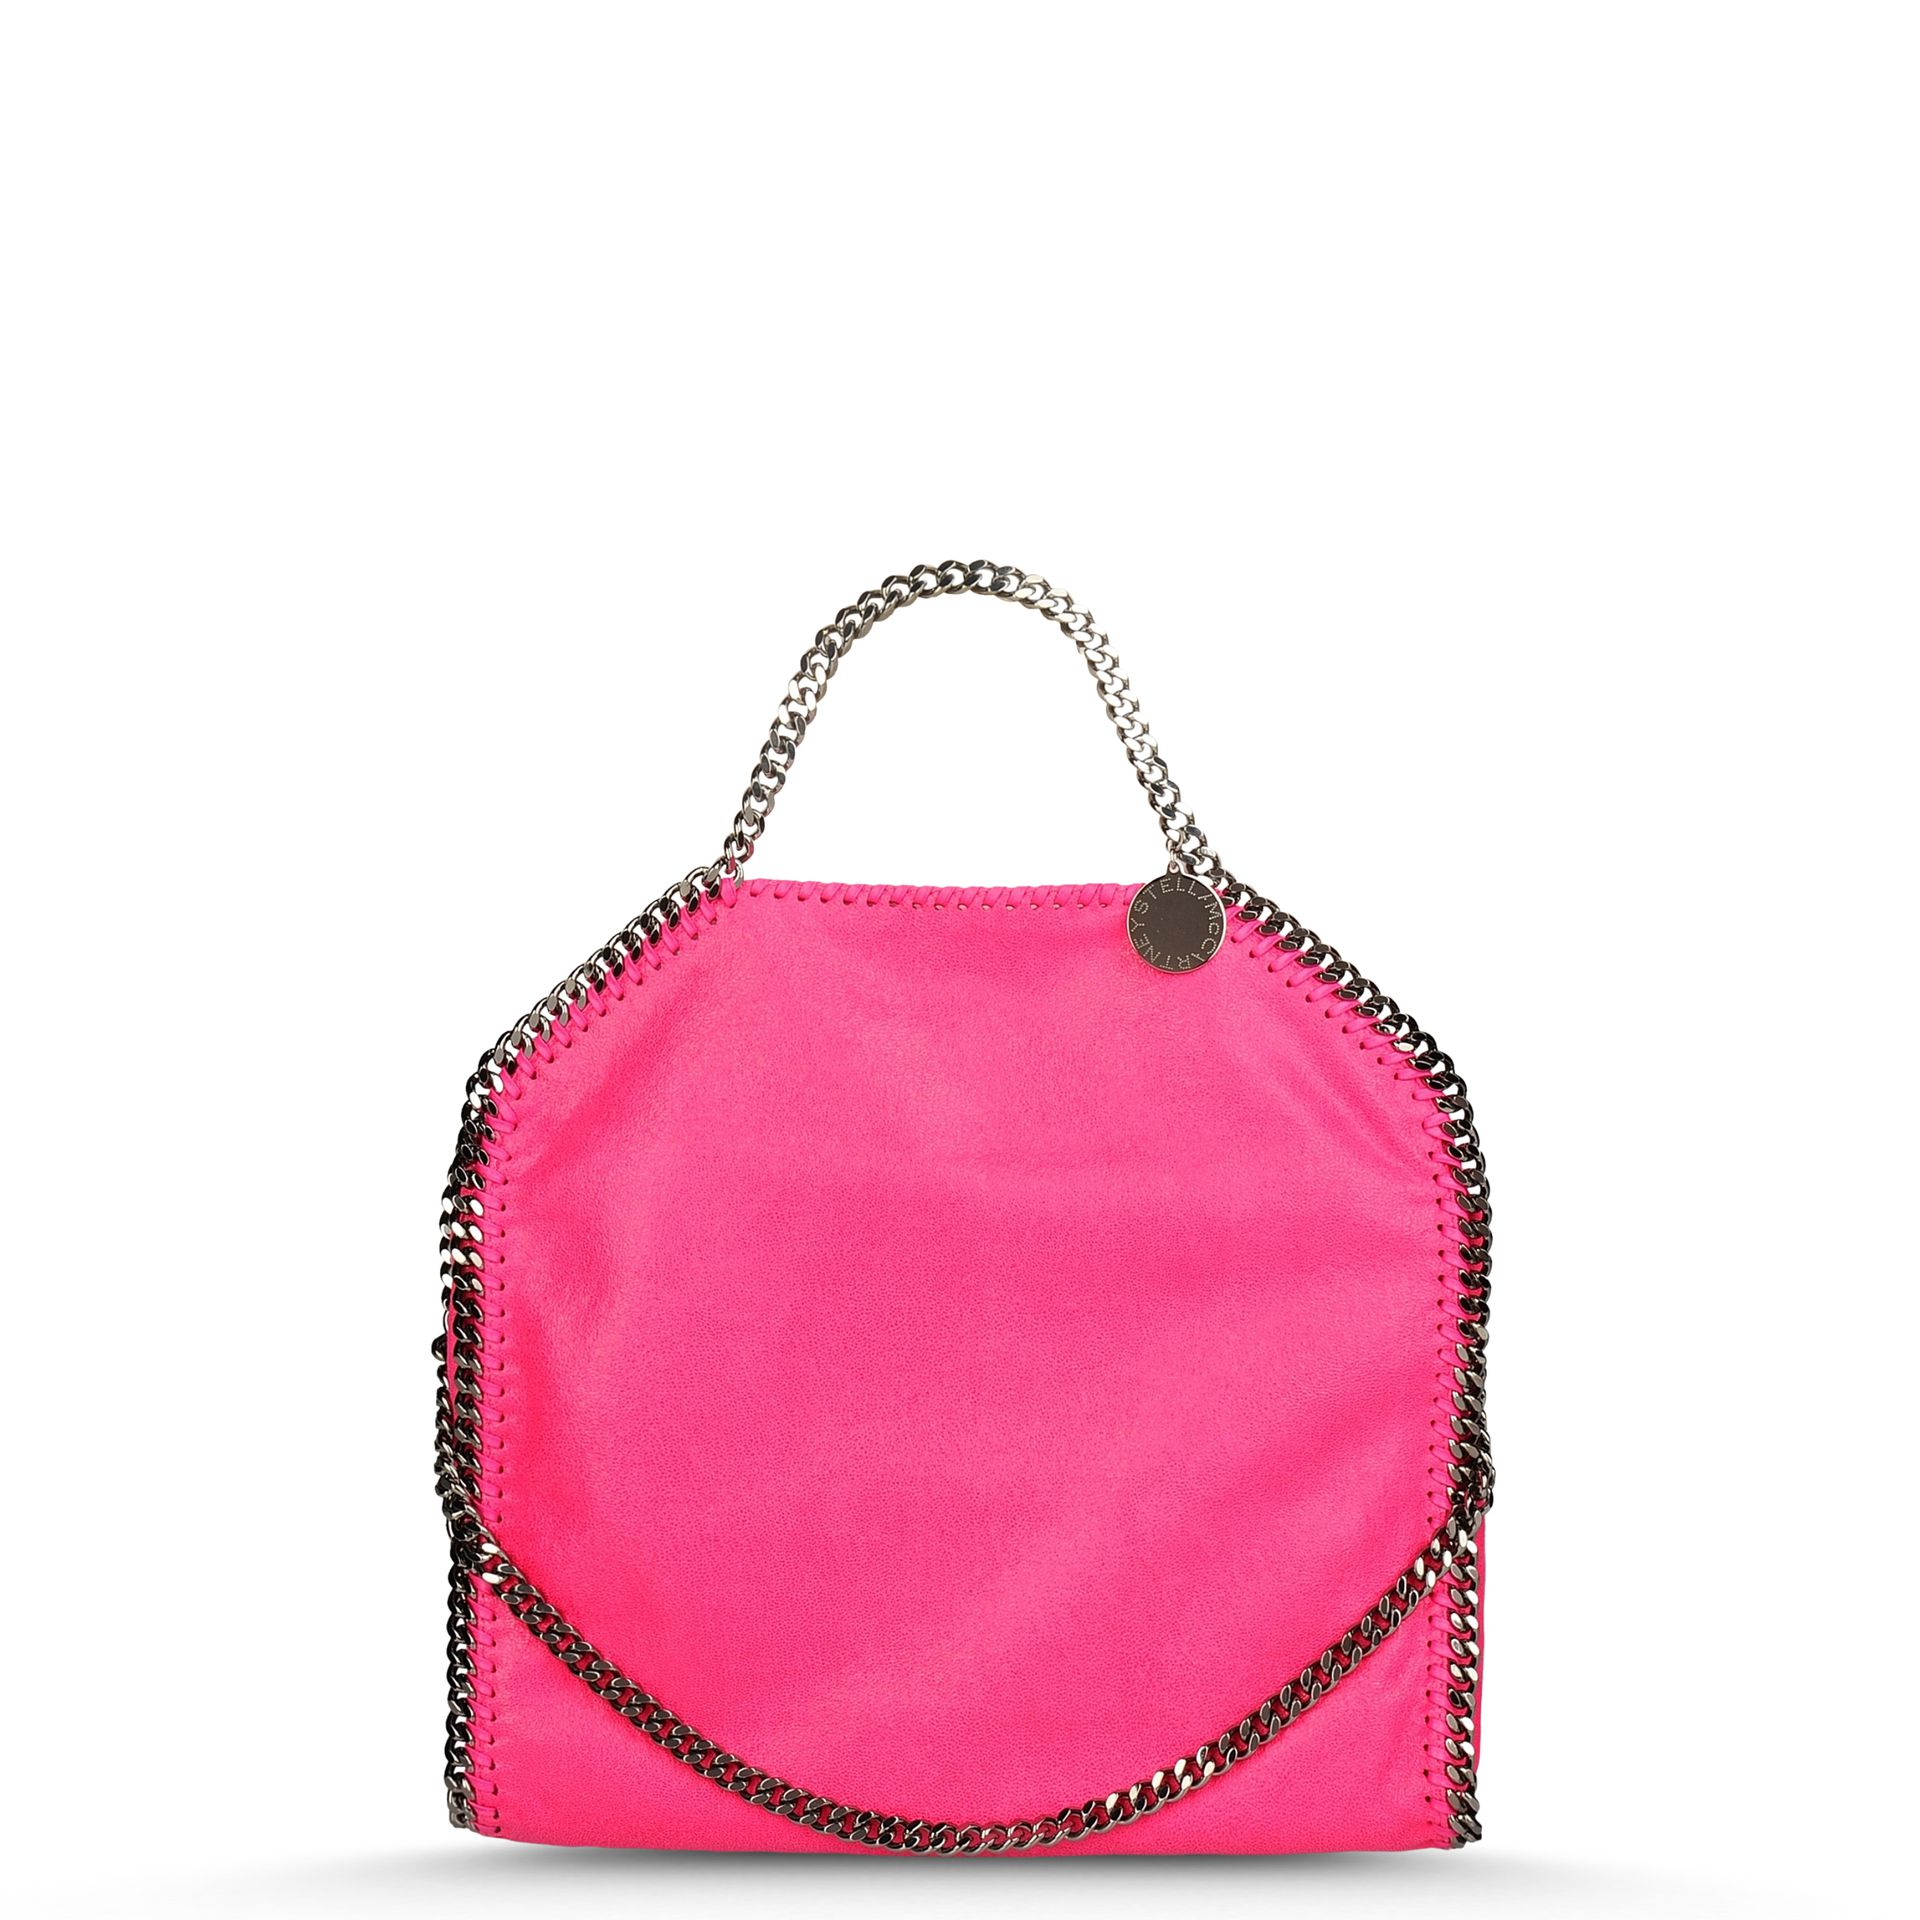 42cb03c9f1e Stella McCartney Falabella Shaggy Deer Fold Over Tote in Pink - Lyst